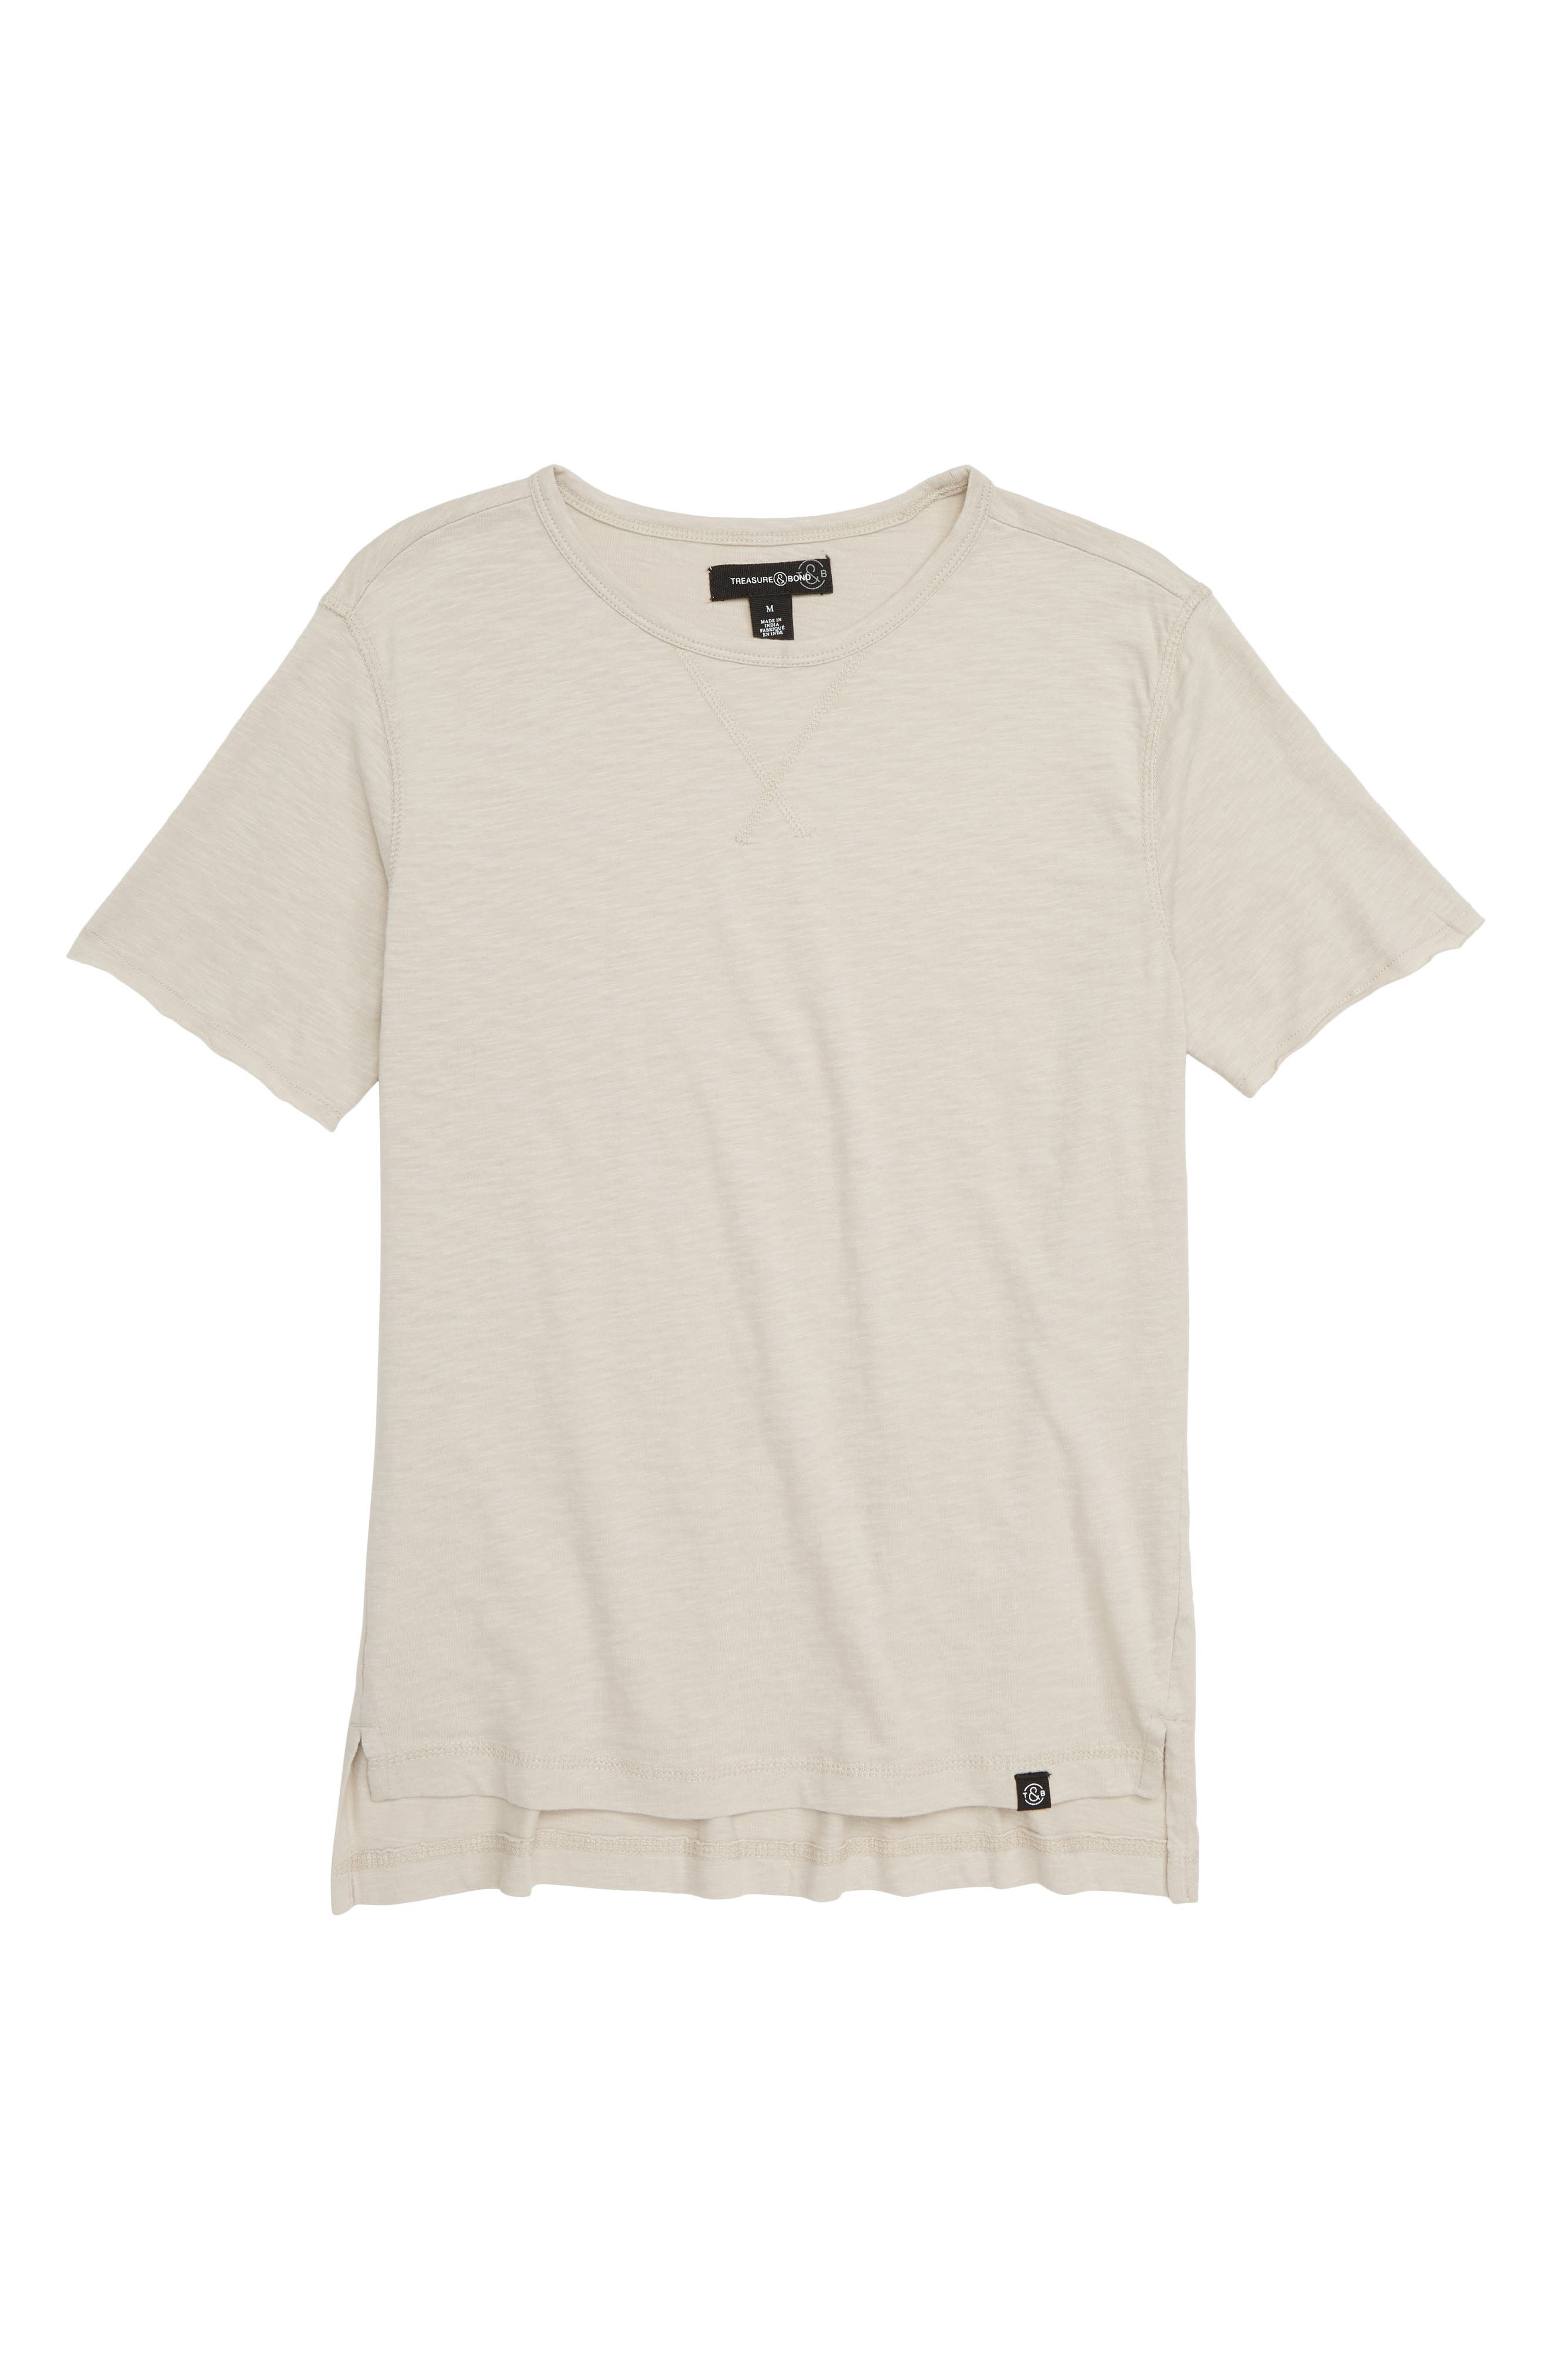 Washed T-Shirt,                         Main,                         color, GREY CHATEAU